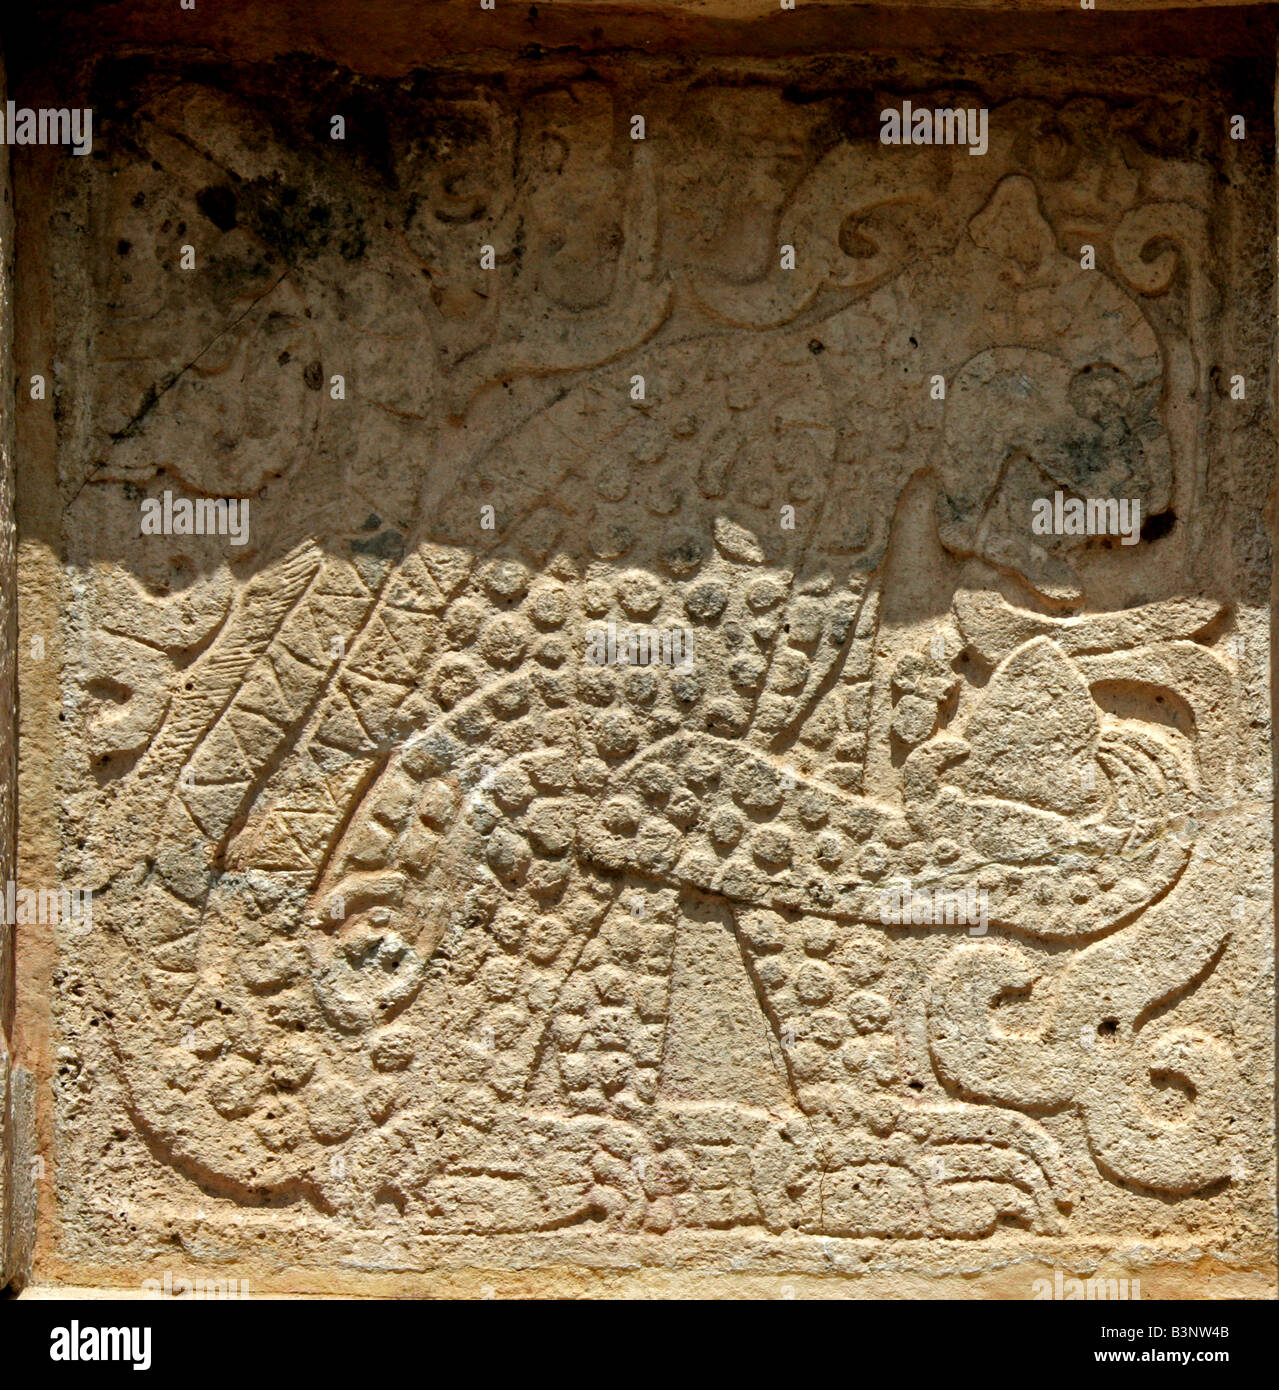 Detail of Jaguar Carving on the Platform of the Eagles and Jaguars, Chichen Itza, Yucatan Peninsular, Mexico Stock Photo